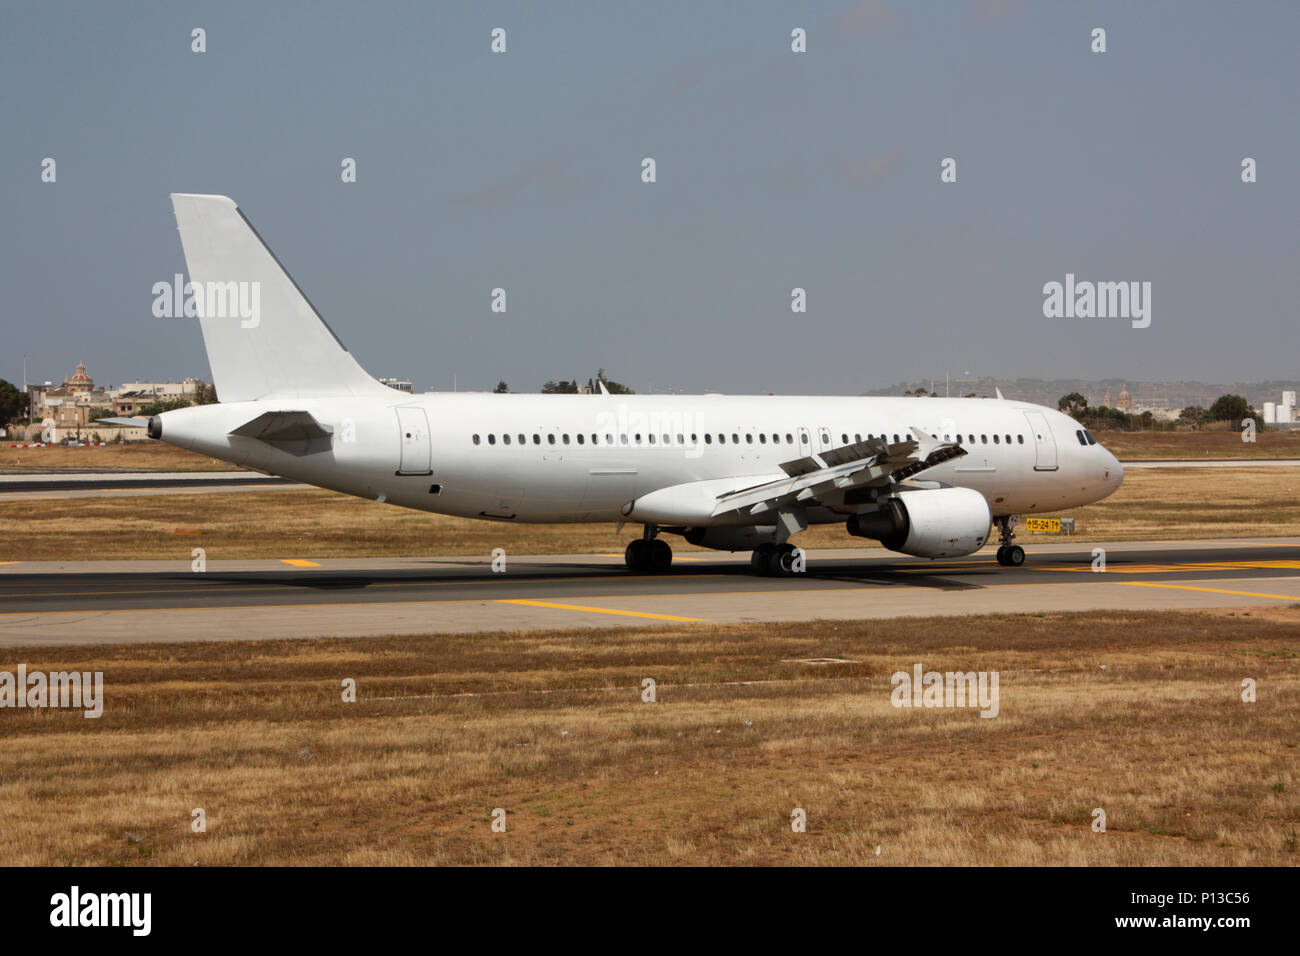 Airbus A320 commercial passenger jet aeroplane taxiing on a taxiway after landing. Proprietary details deleted and no persons visible. Air transport. - Stock Image